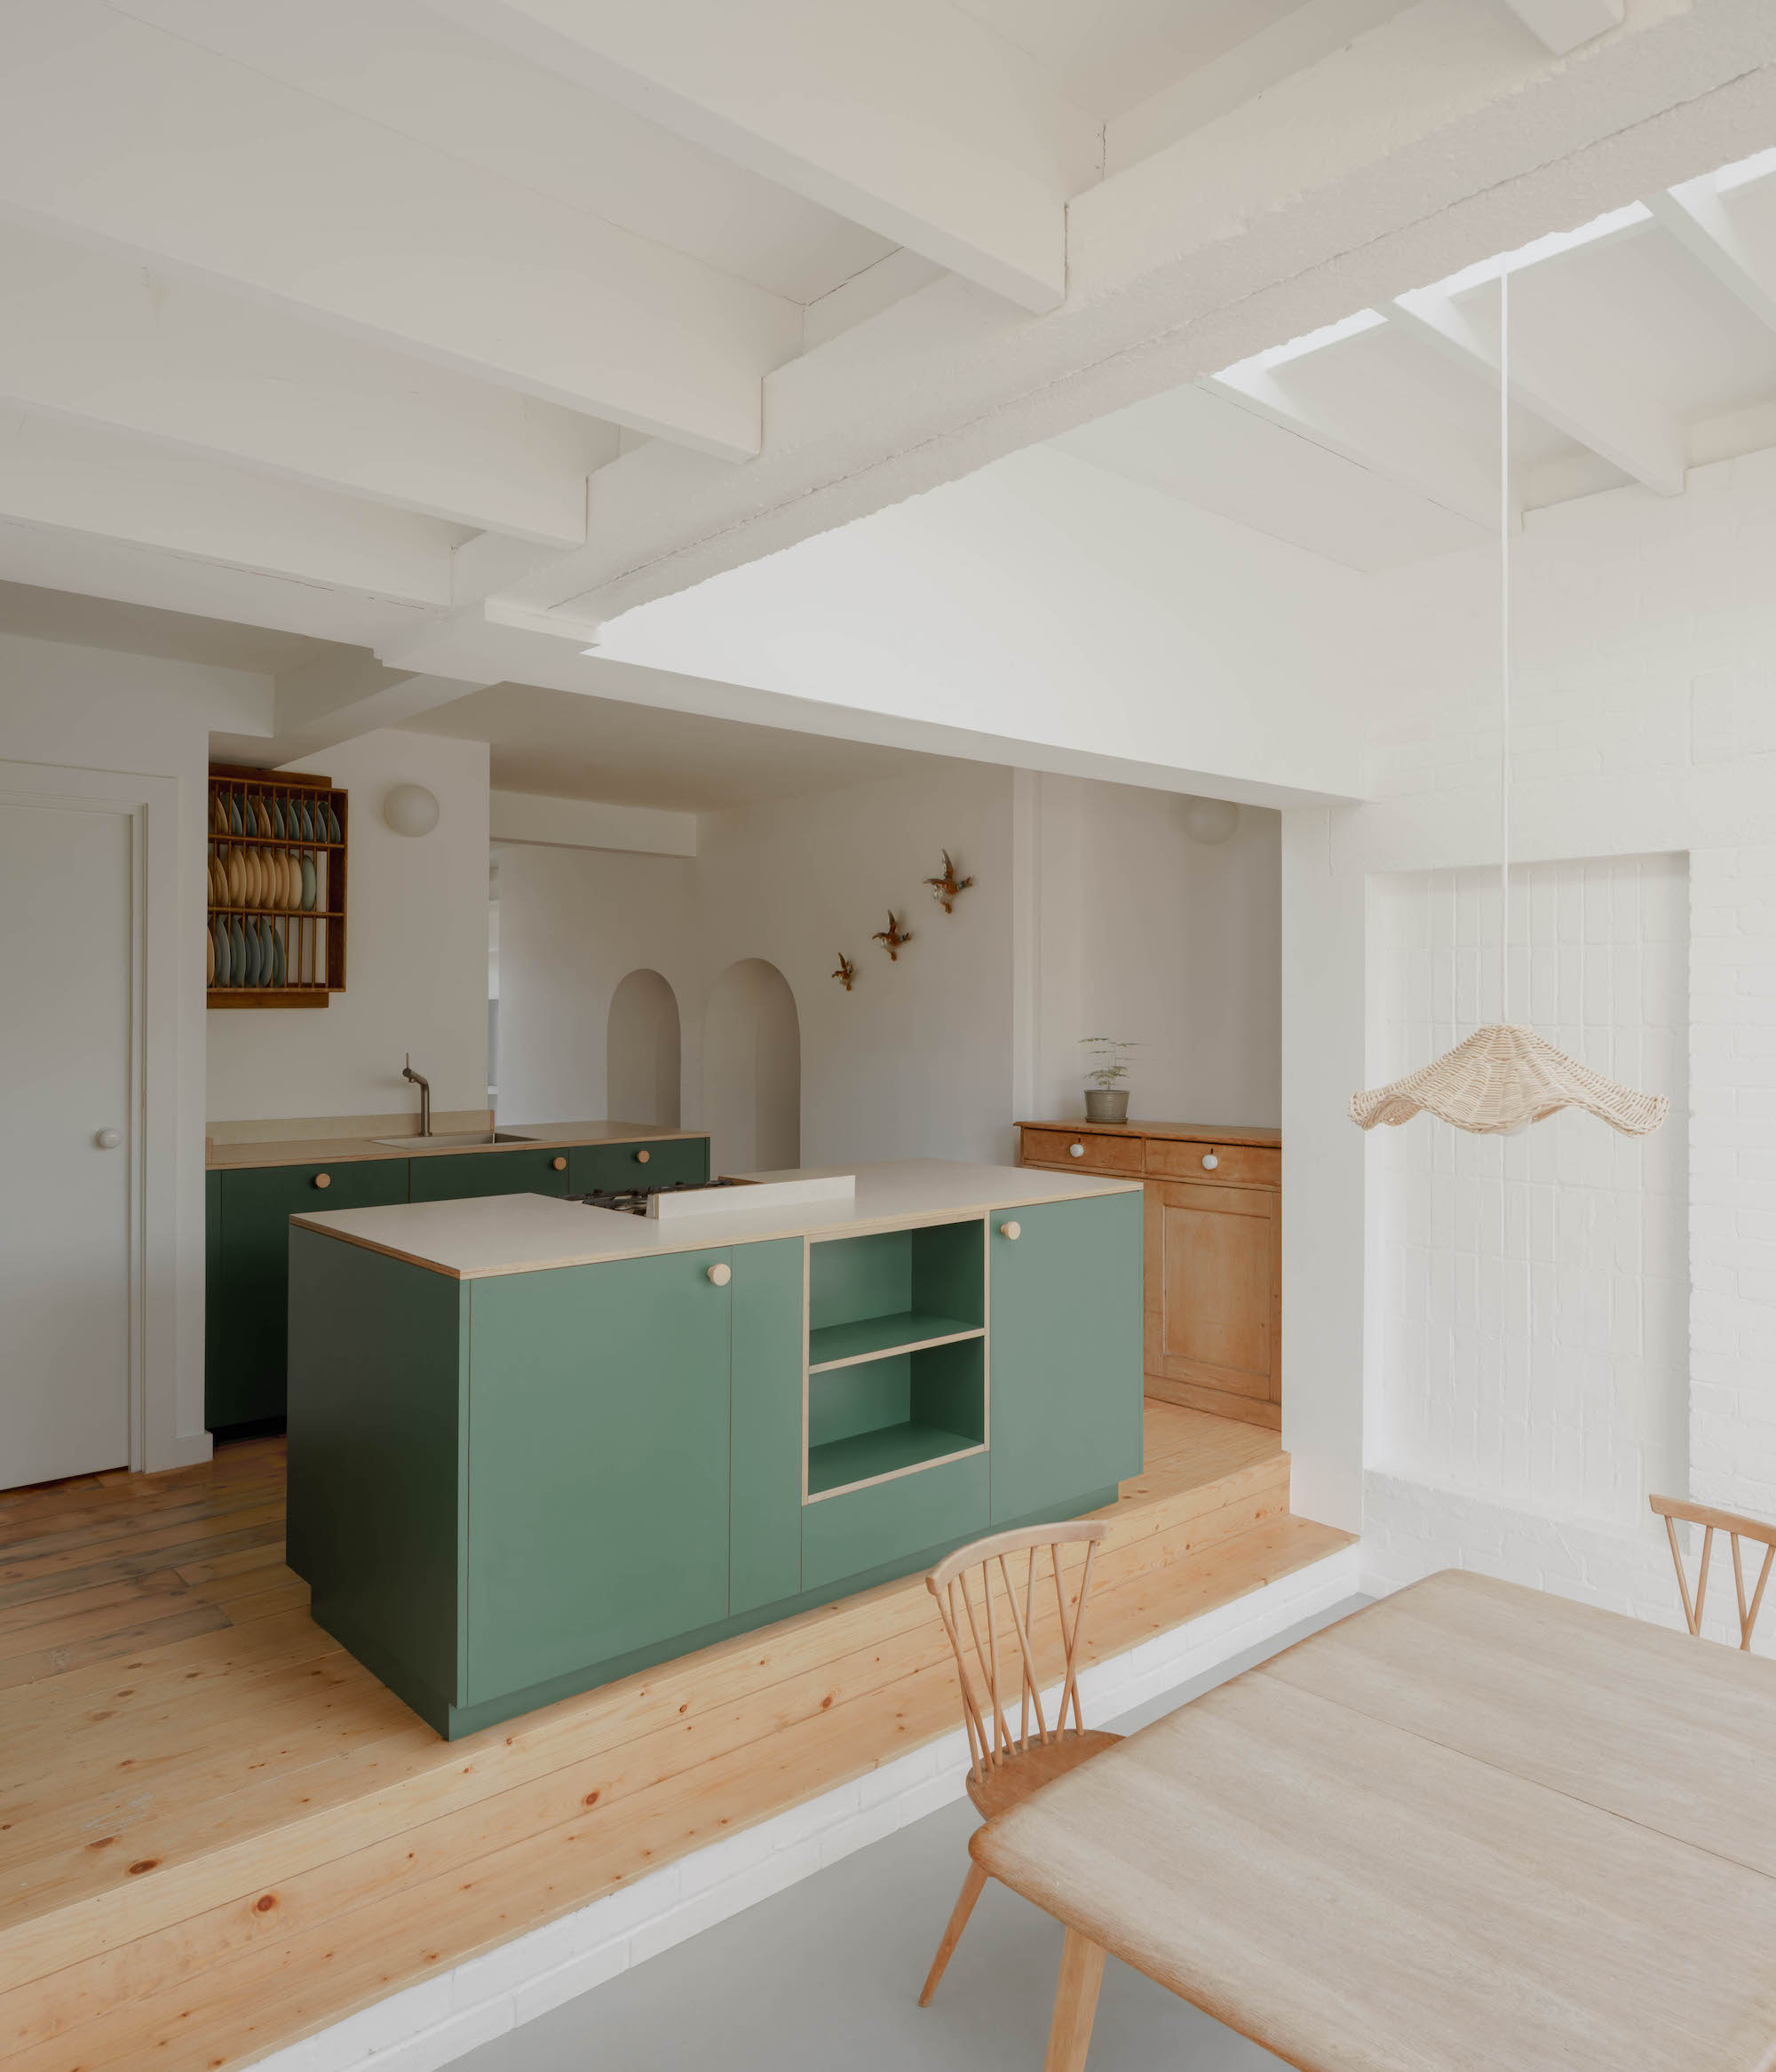 Kitchen of the Week: An Ikea Kitchen, Elevated and Upgraded - Remodelista